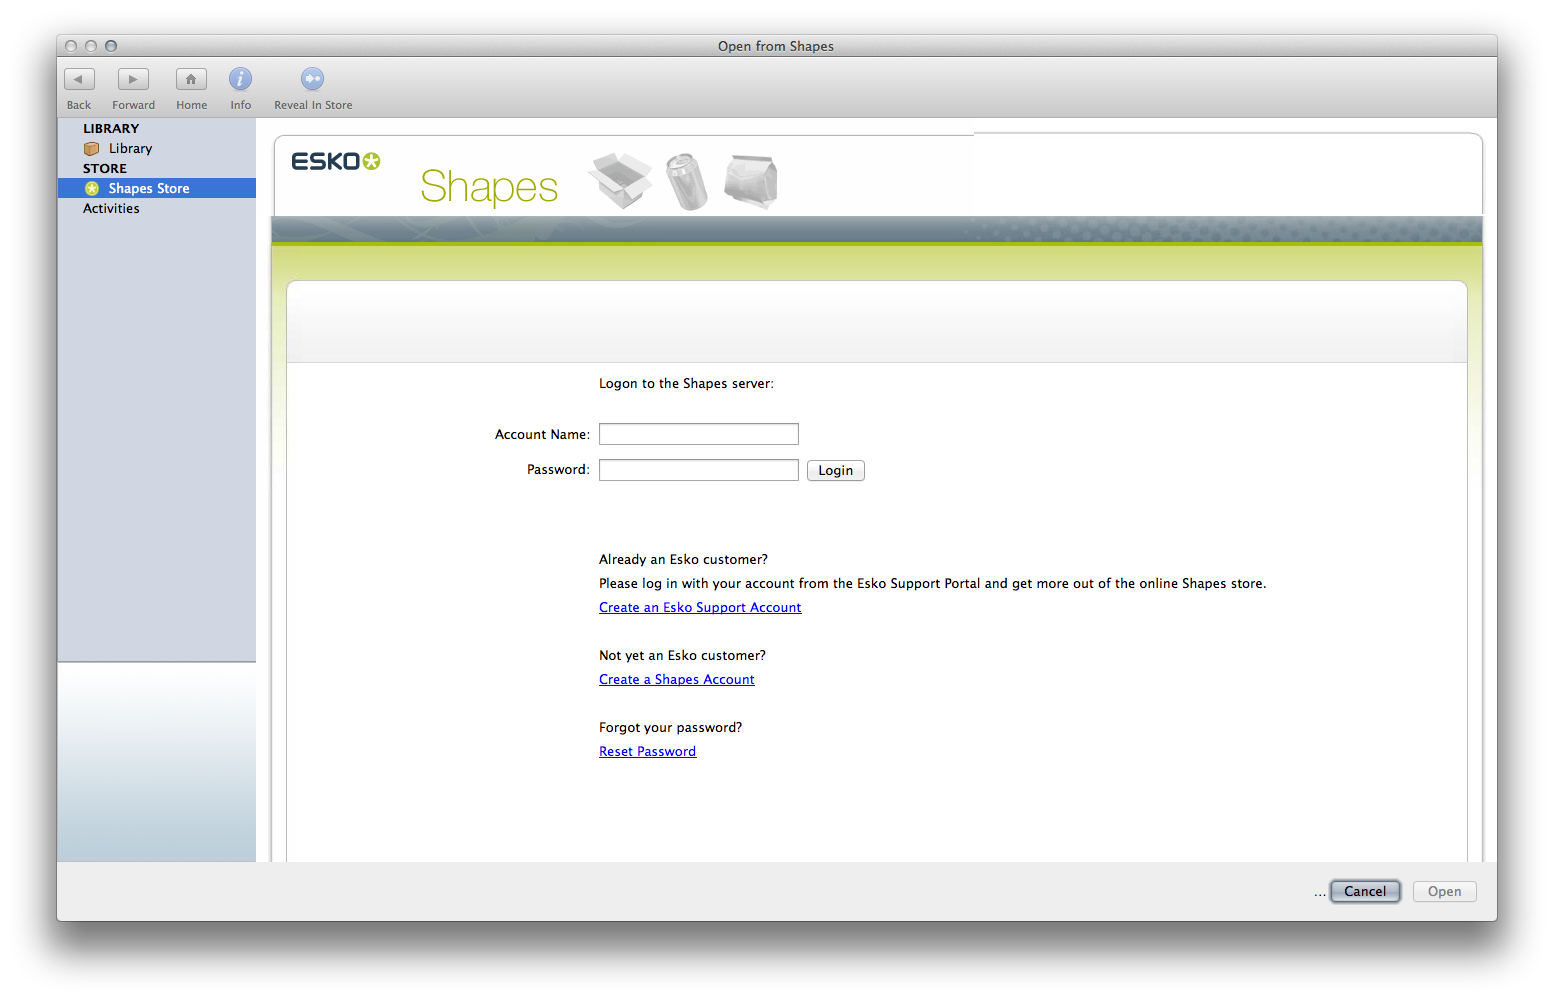 Shop customer account create downloader downloader/downloader - Do You Already Have An Esko Id For Logging Into Shapes